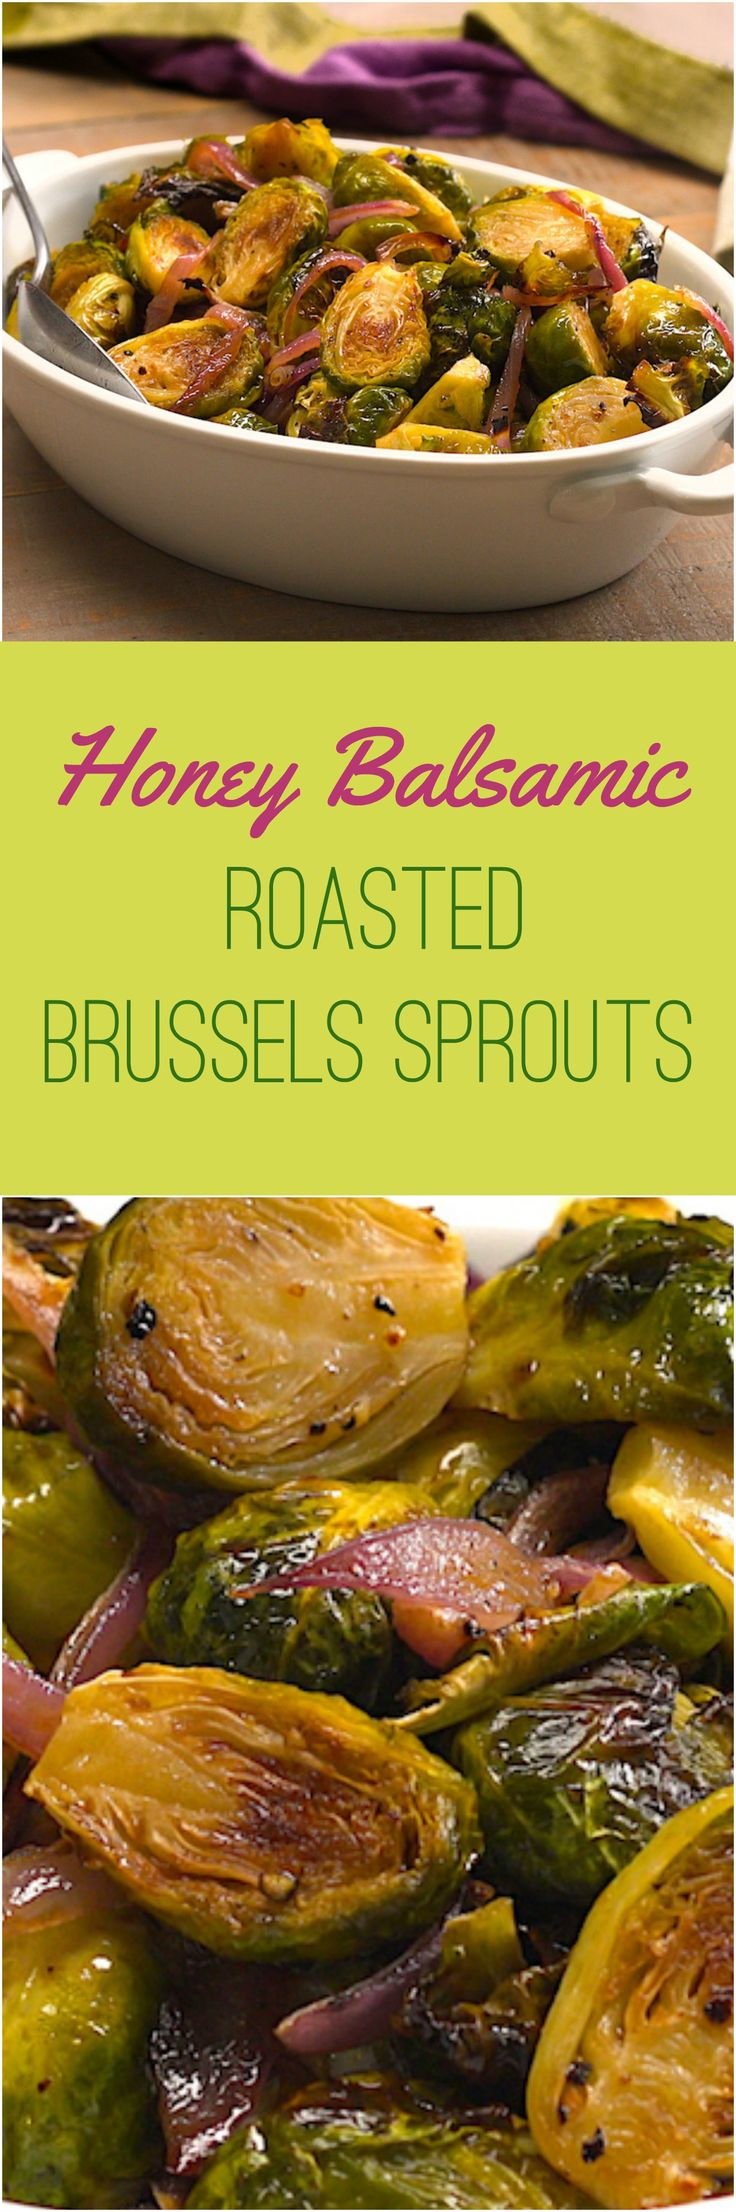 Honey Balsamic Roasted Brussels Sprouts    Roasted Brussels sprouts are caramelized in the oven with a bright balsamic & honey glaze, for a colorful veggie side dish that bursts with flavor. TipHero    We roast Brussels sprouts in the oven until they're caramelized and toasty, then glaze them with an irresistible honey balsamic dressing.